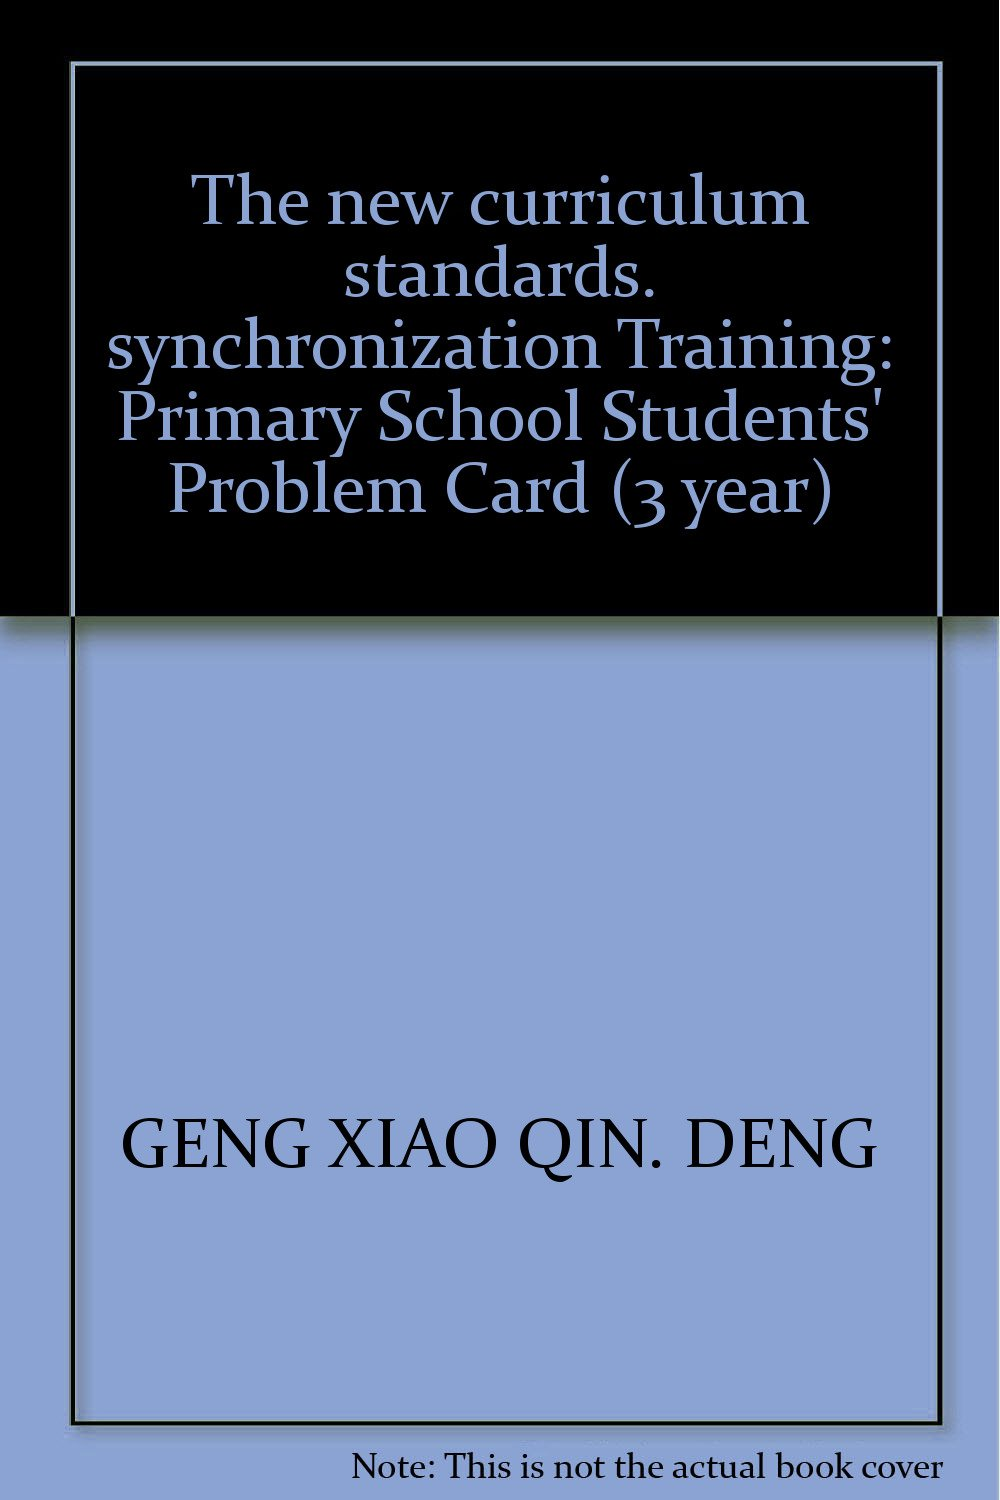 Download The new curriculum standards. synchronization Training: Primary School Students' Problem Card (3 year) ebook